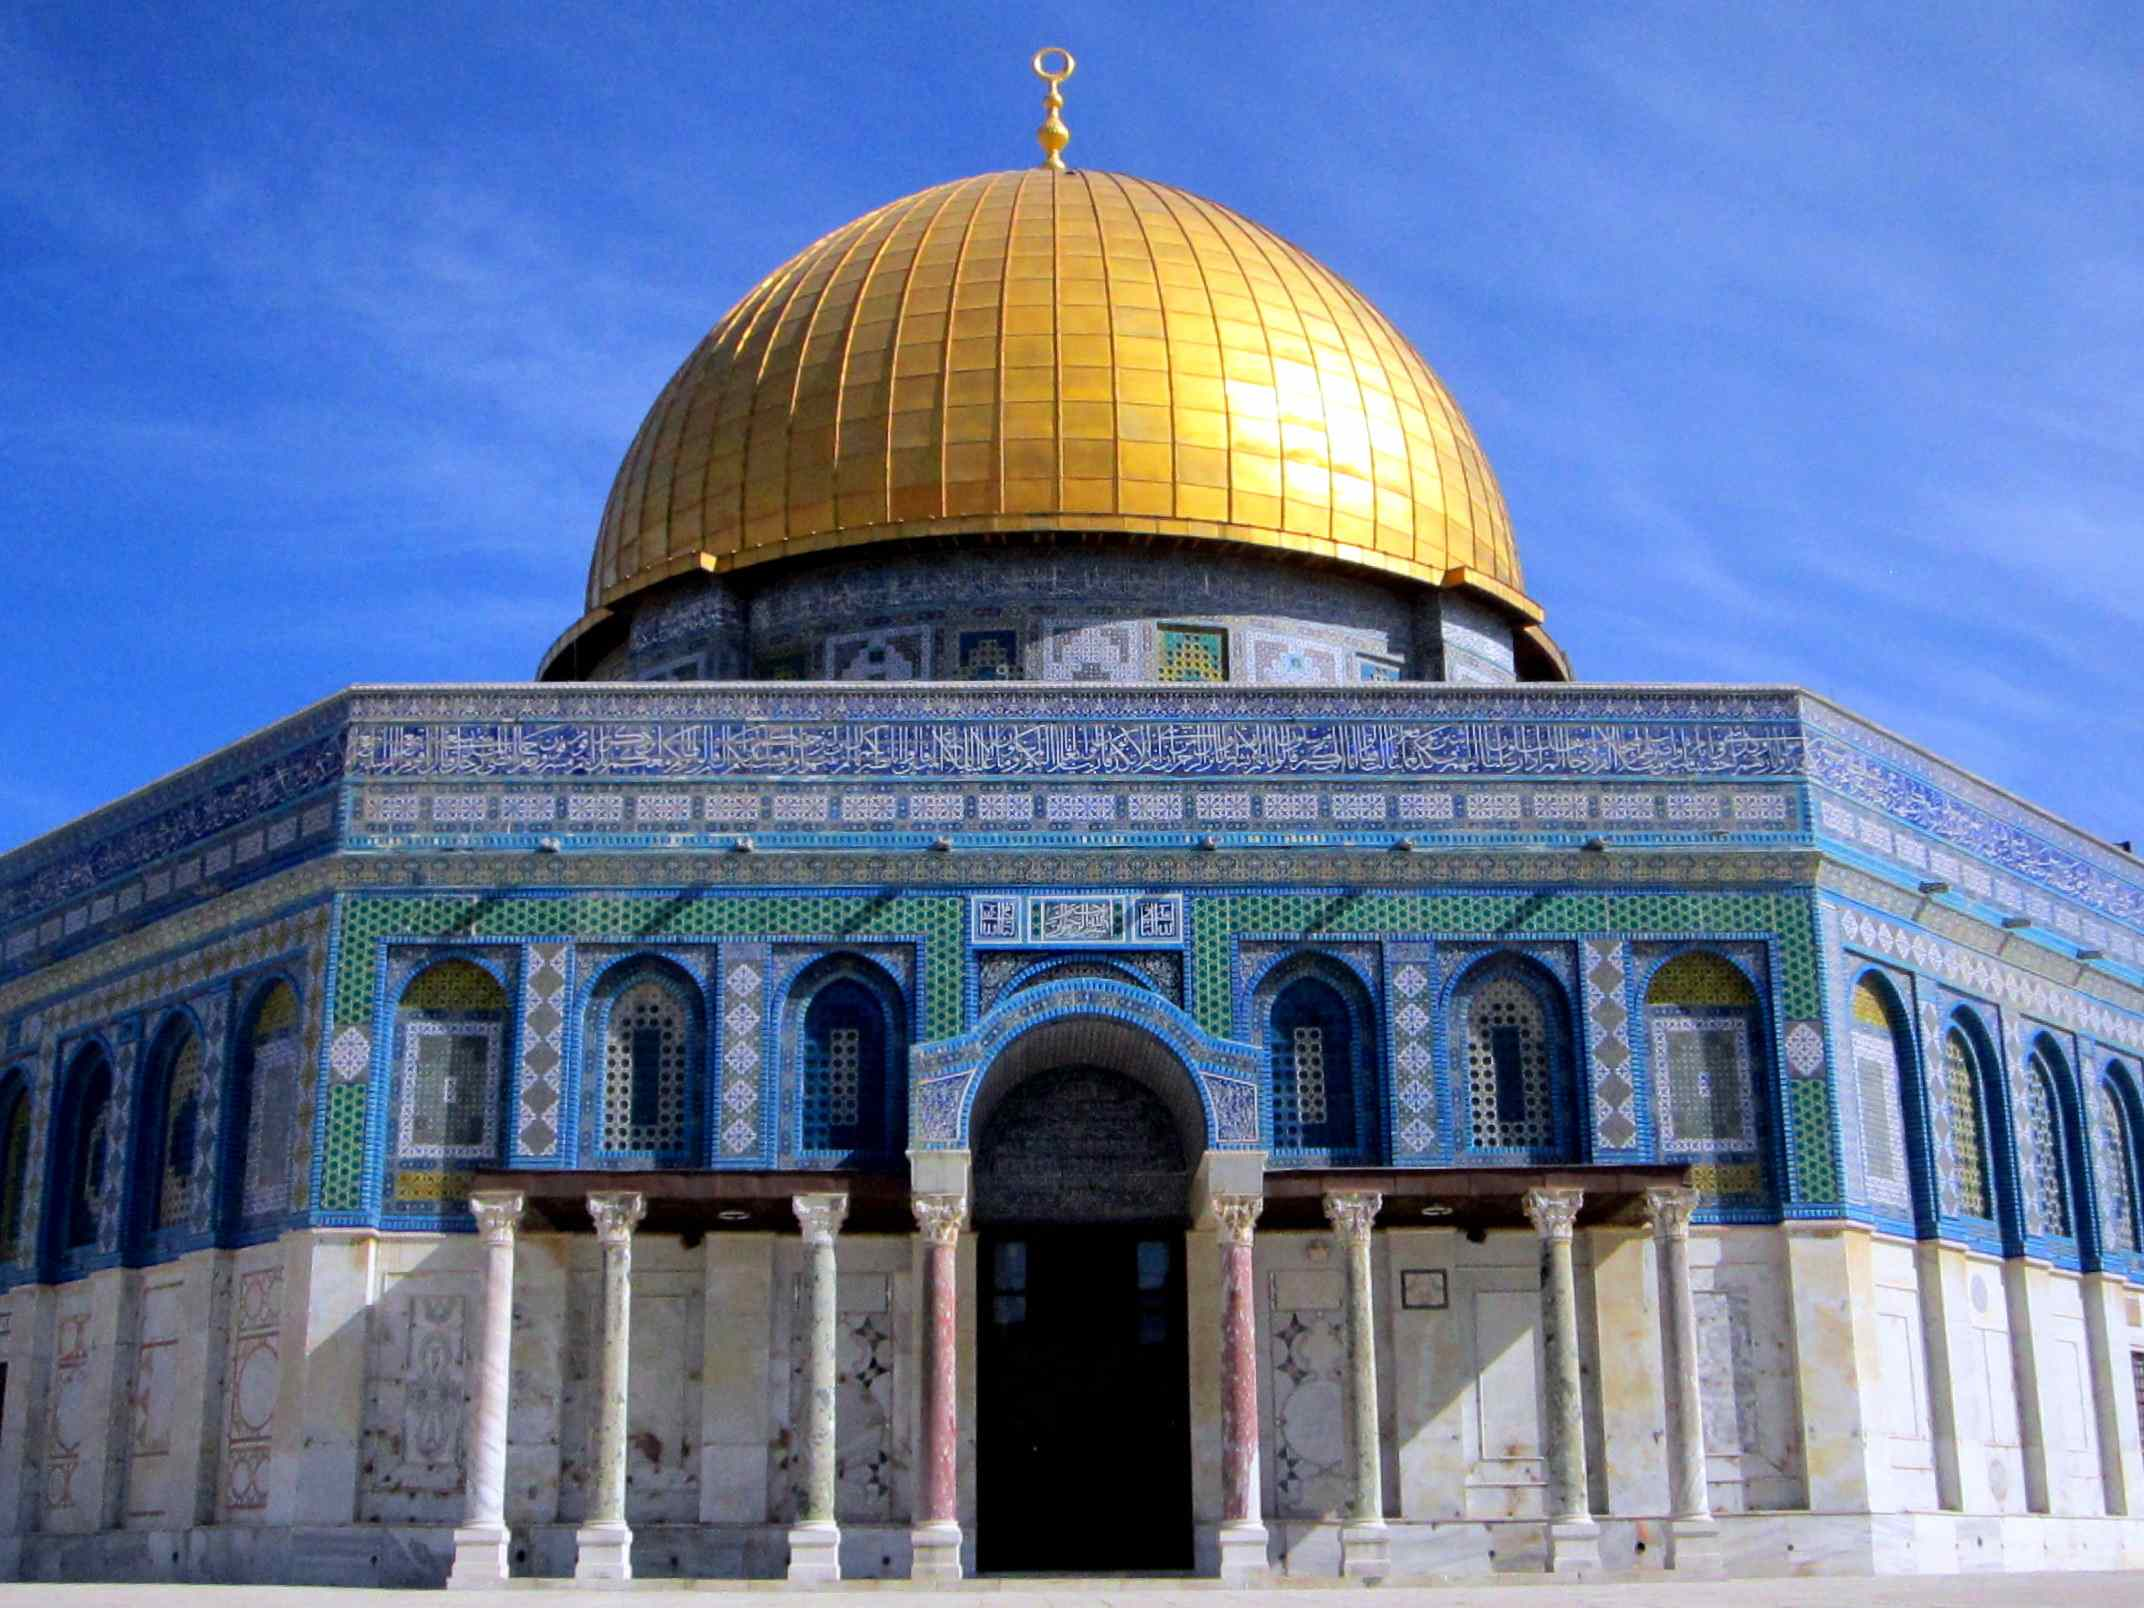 The Dome of the Rock in Jerusalem picture taken by Marisa Elms